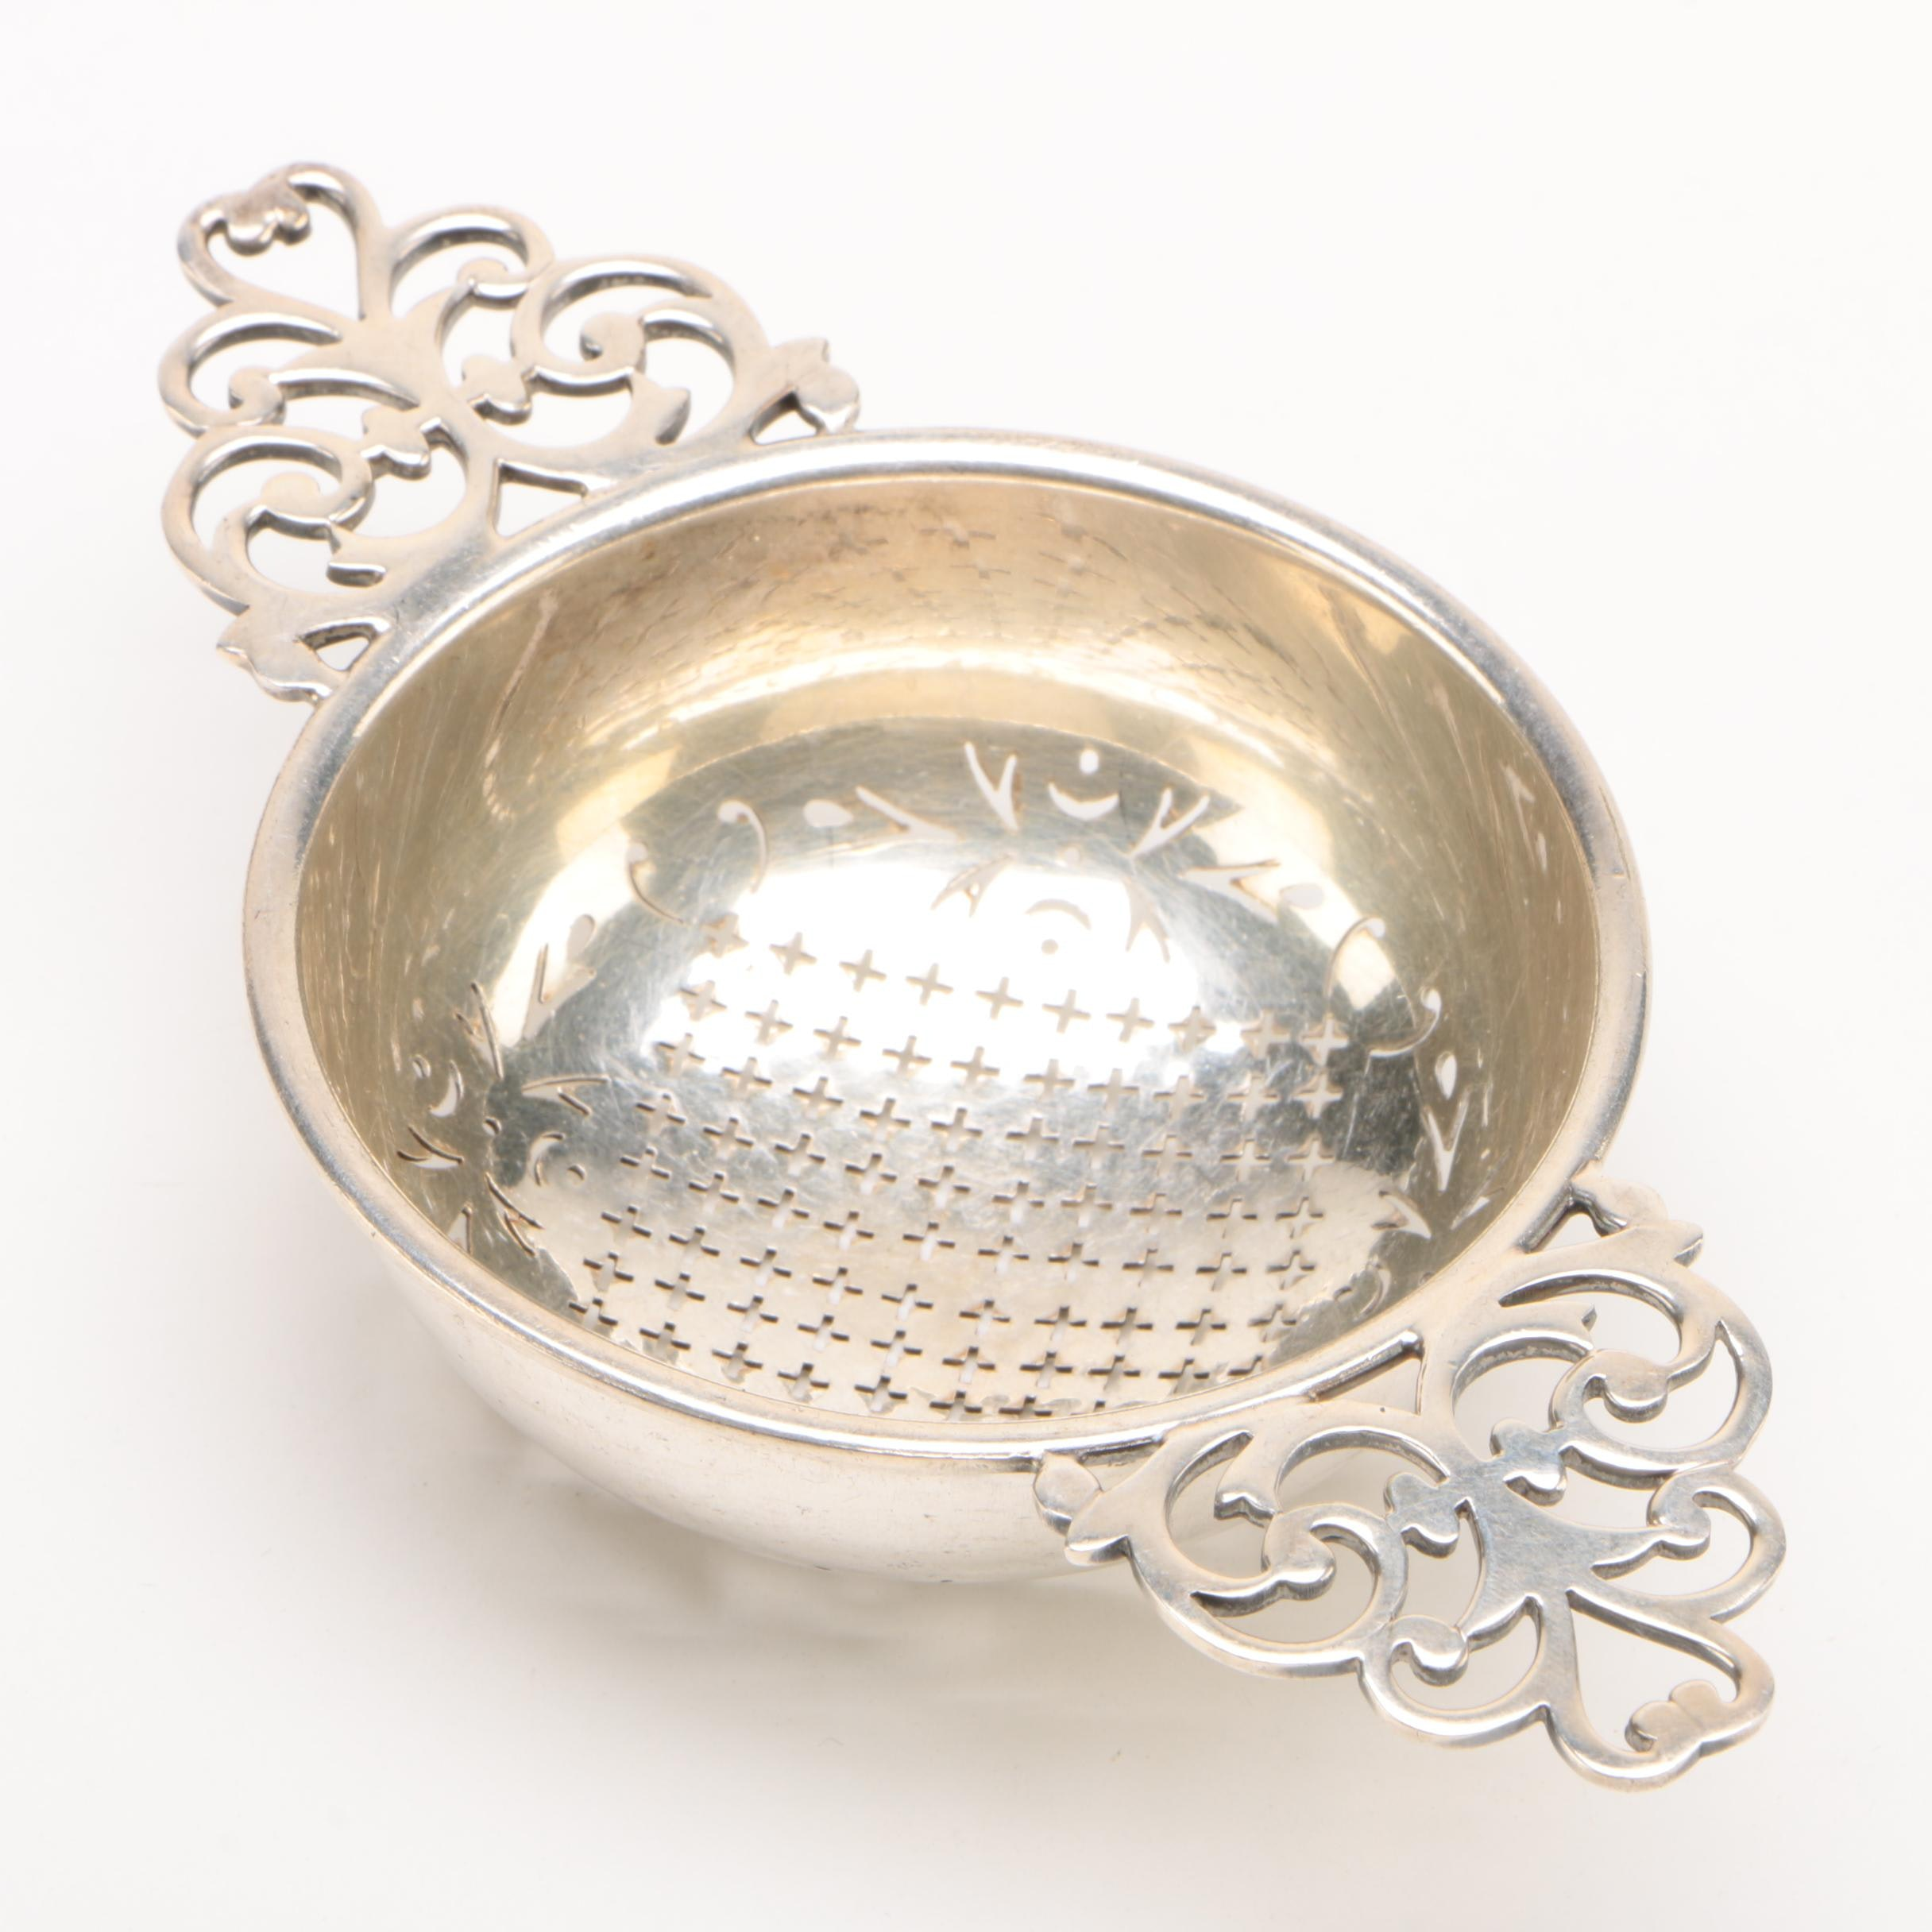 English Silver Plate Tea Strainer with Pierced Handles